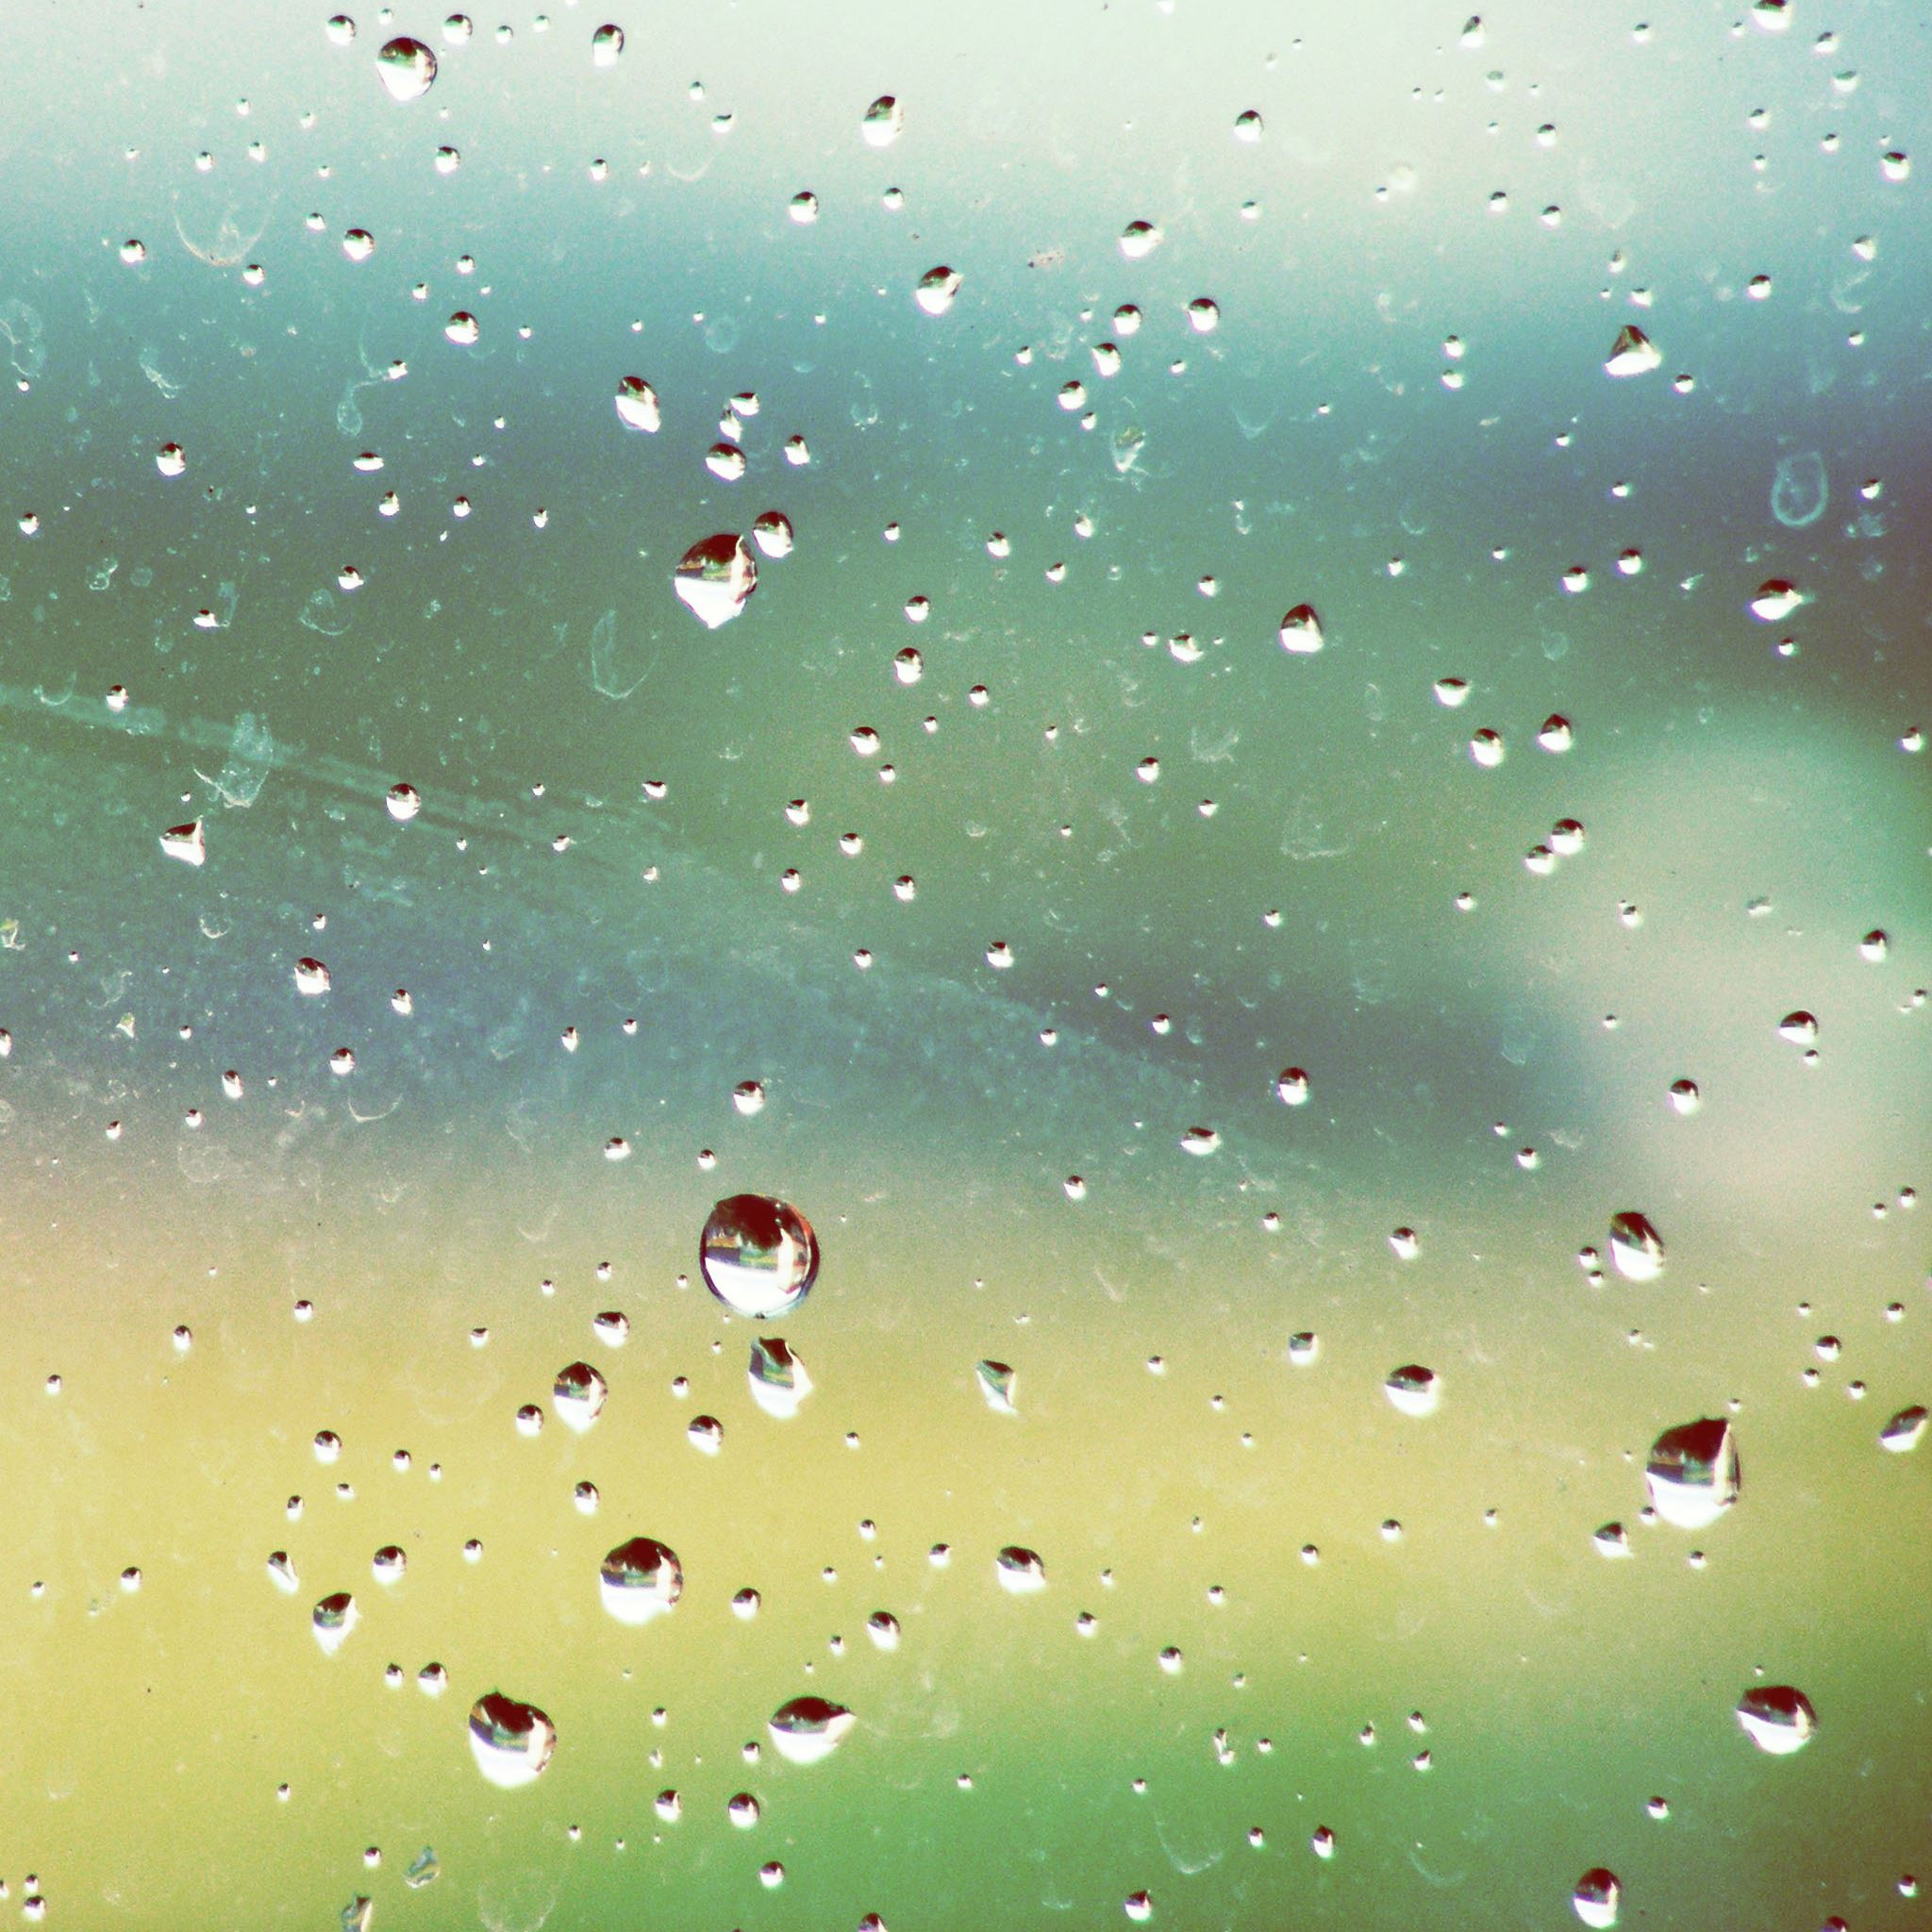 Rainy Window iPad Air wallpaper